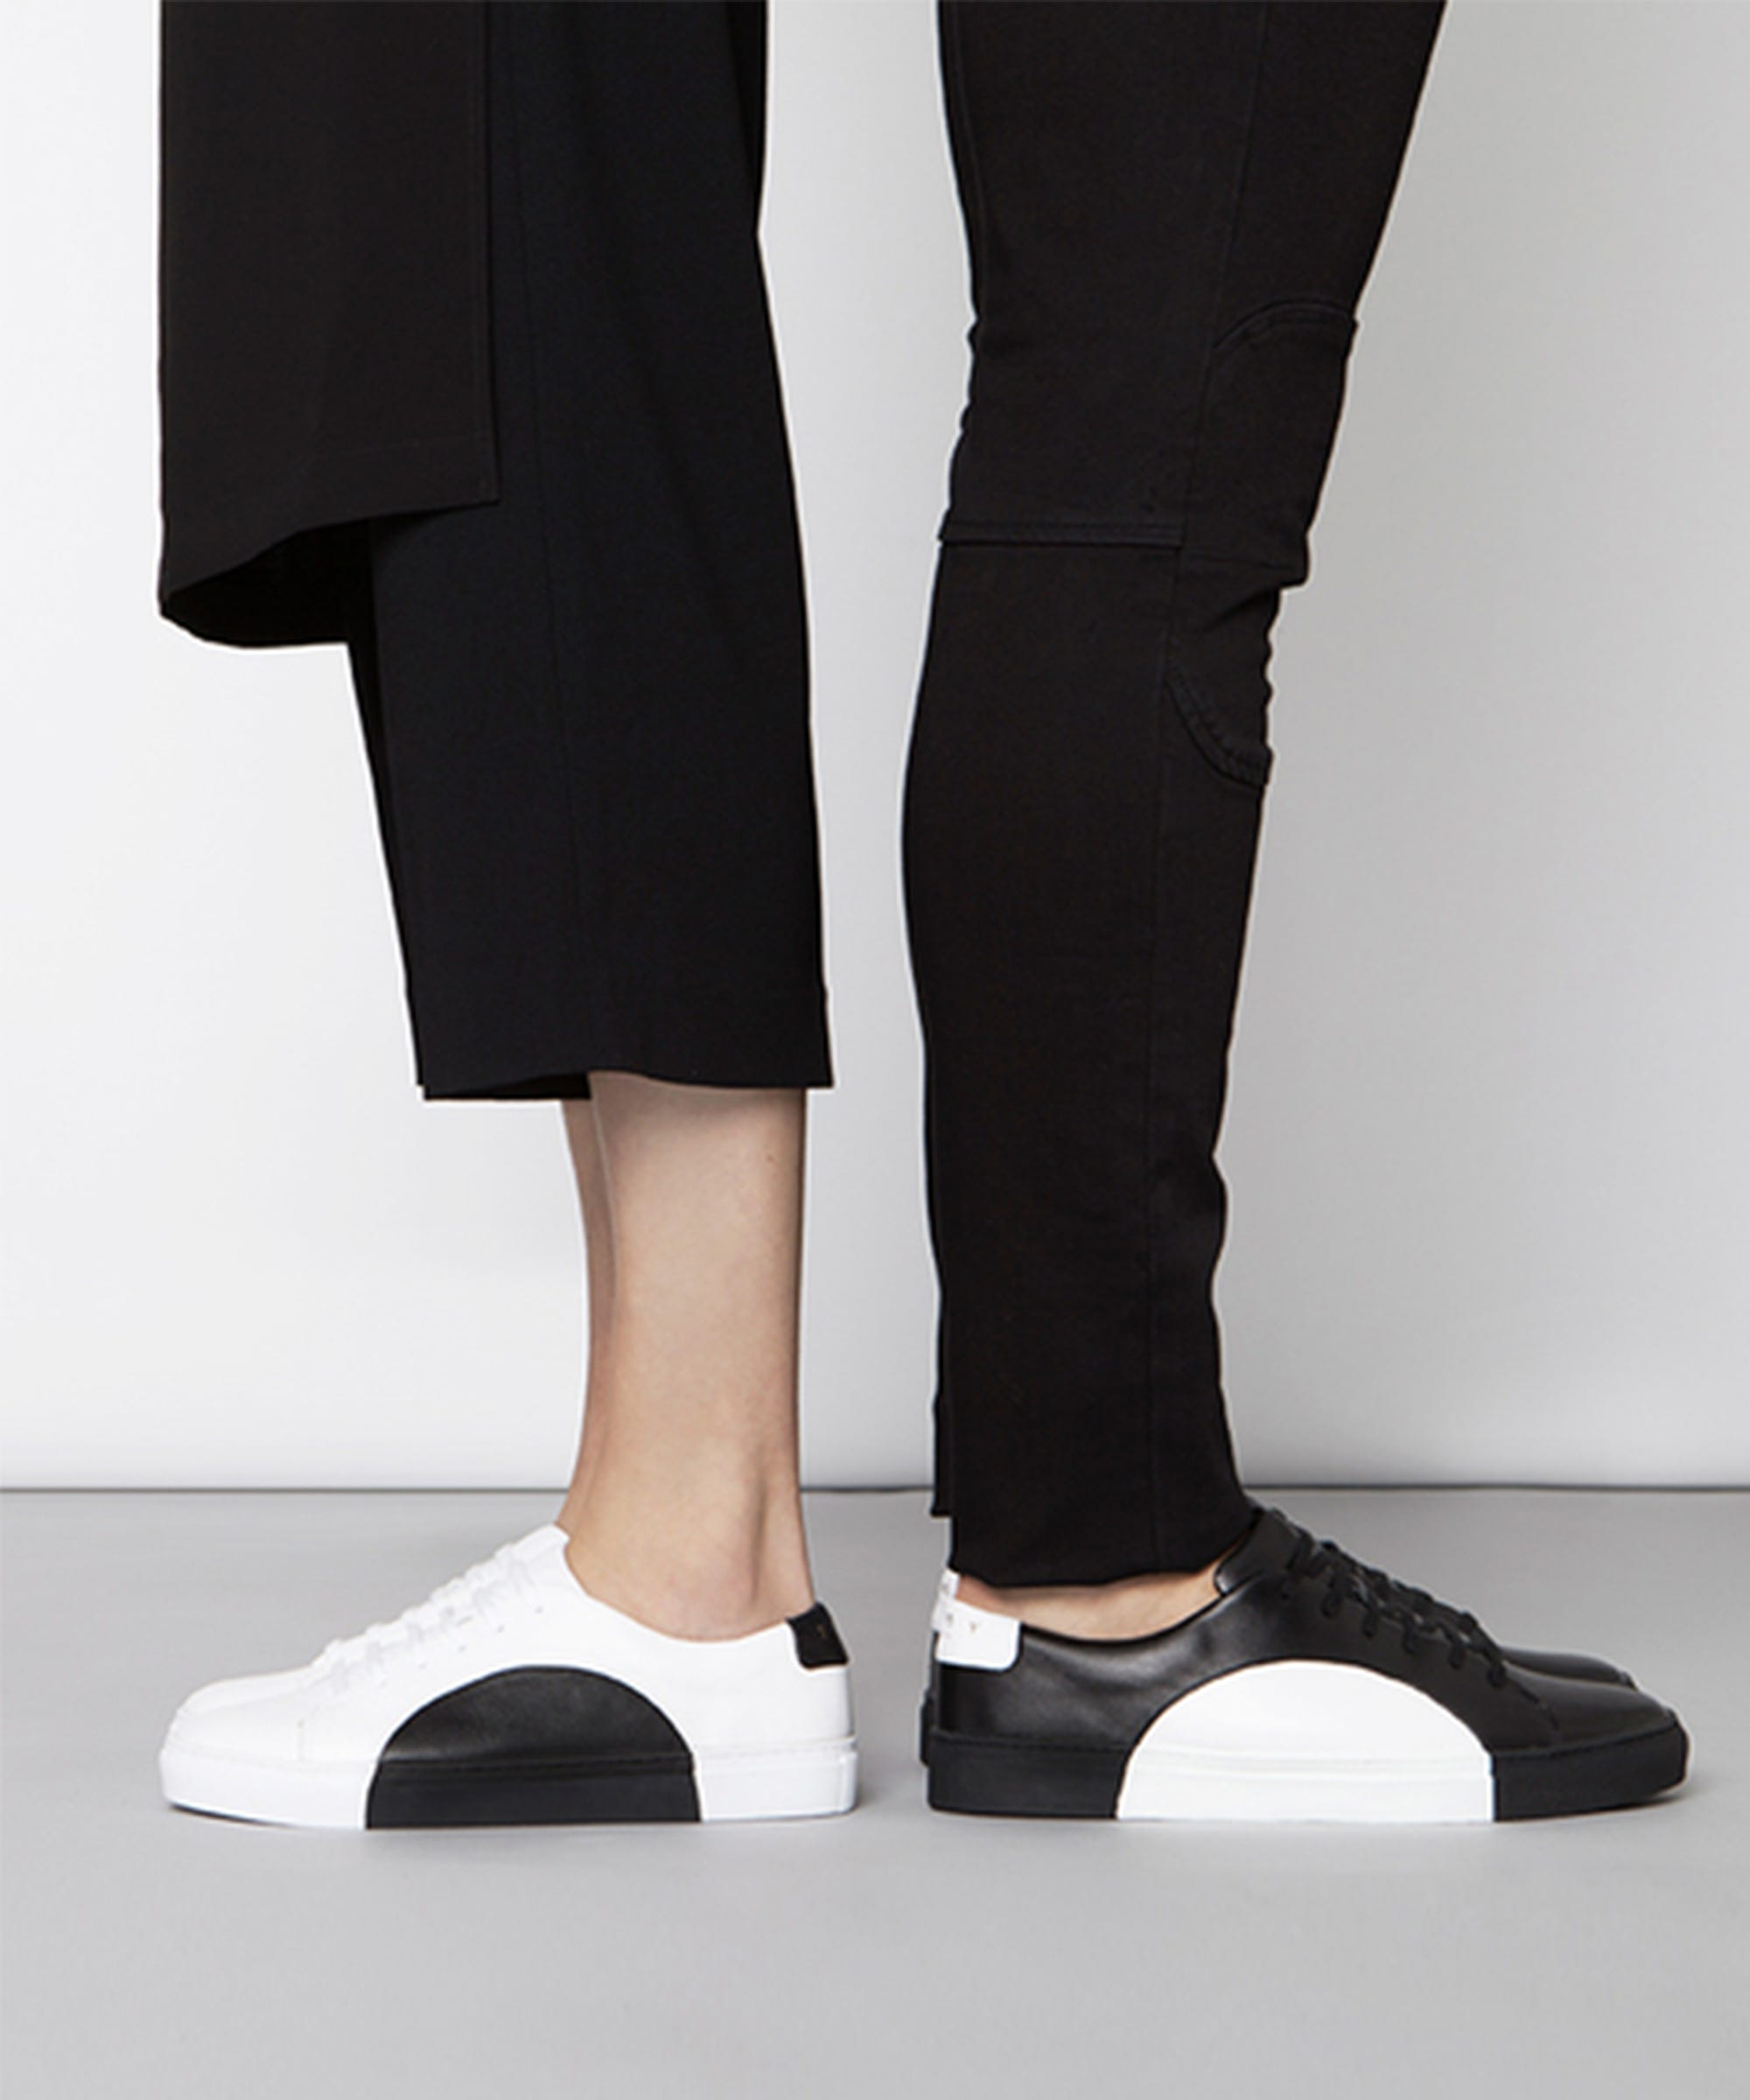 They New York - New Fashion Sneakers